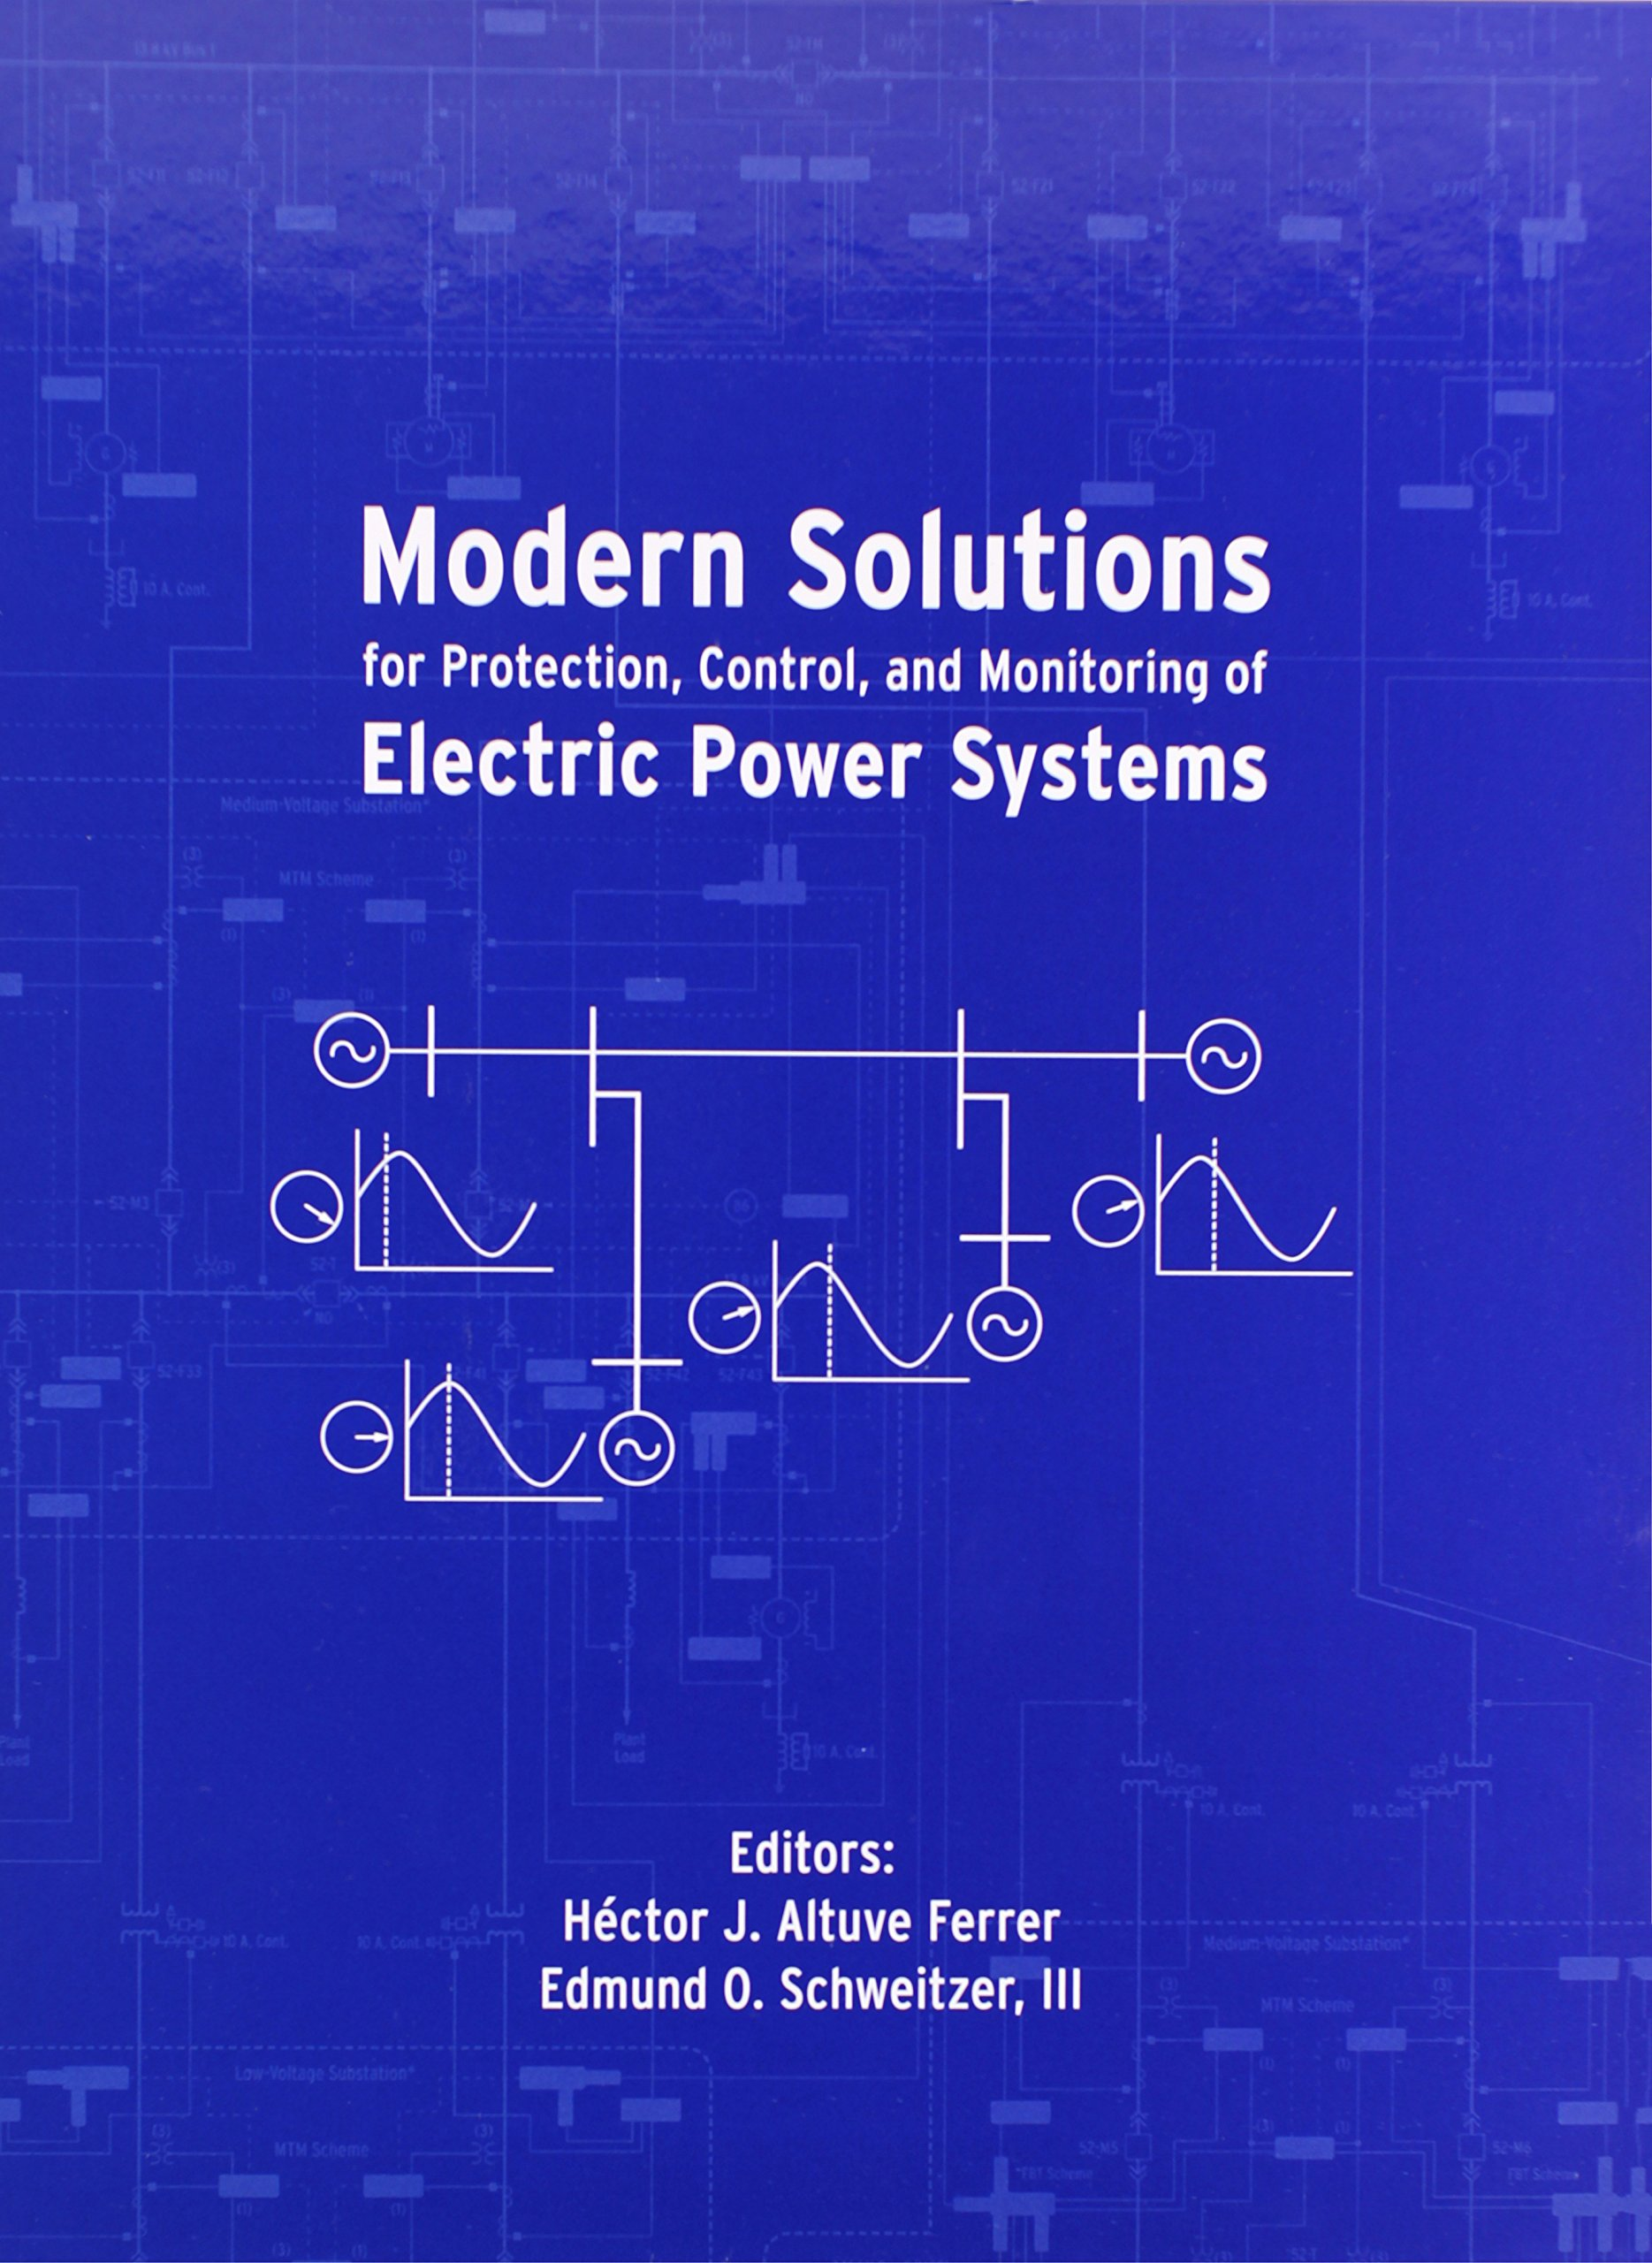 Modern Solutions for Protection, Control and Monitoring of Electric Power Systems pdf